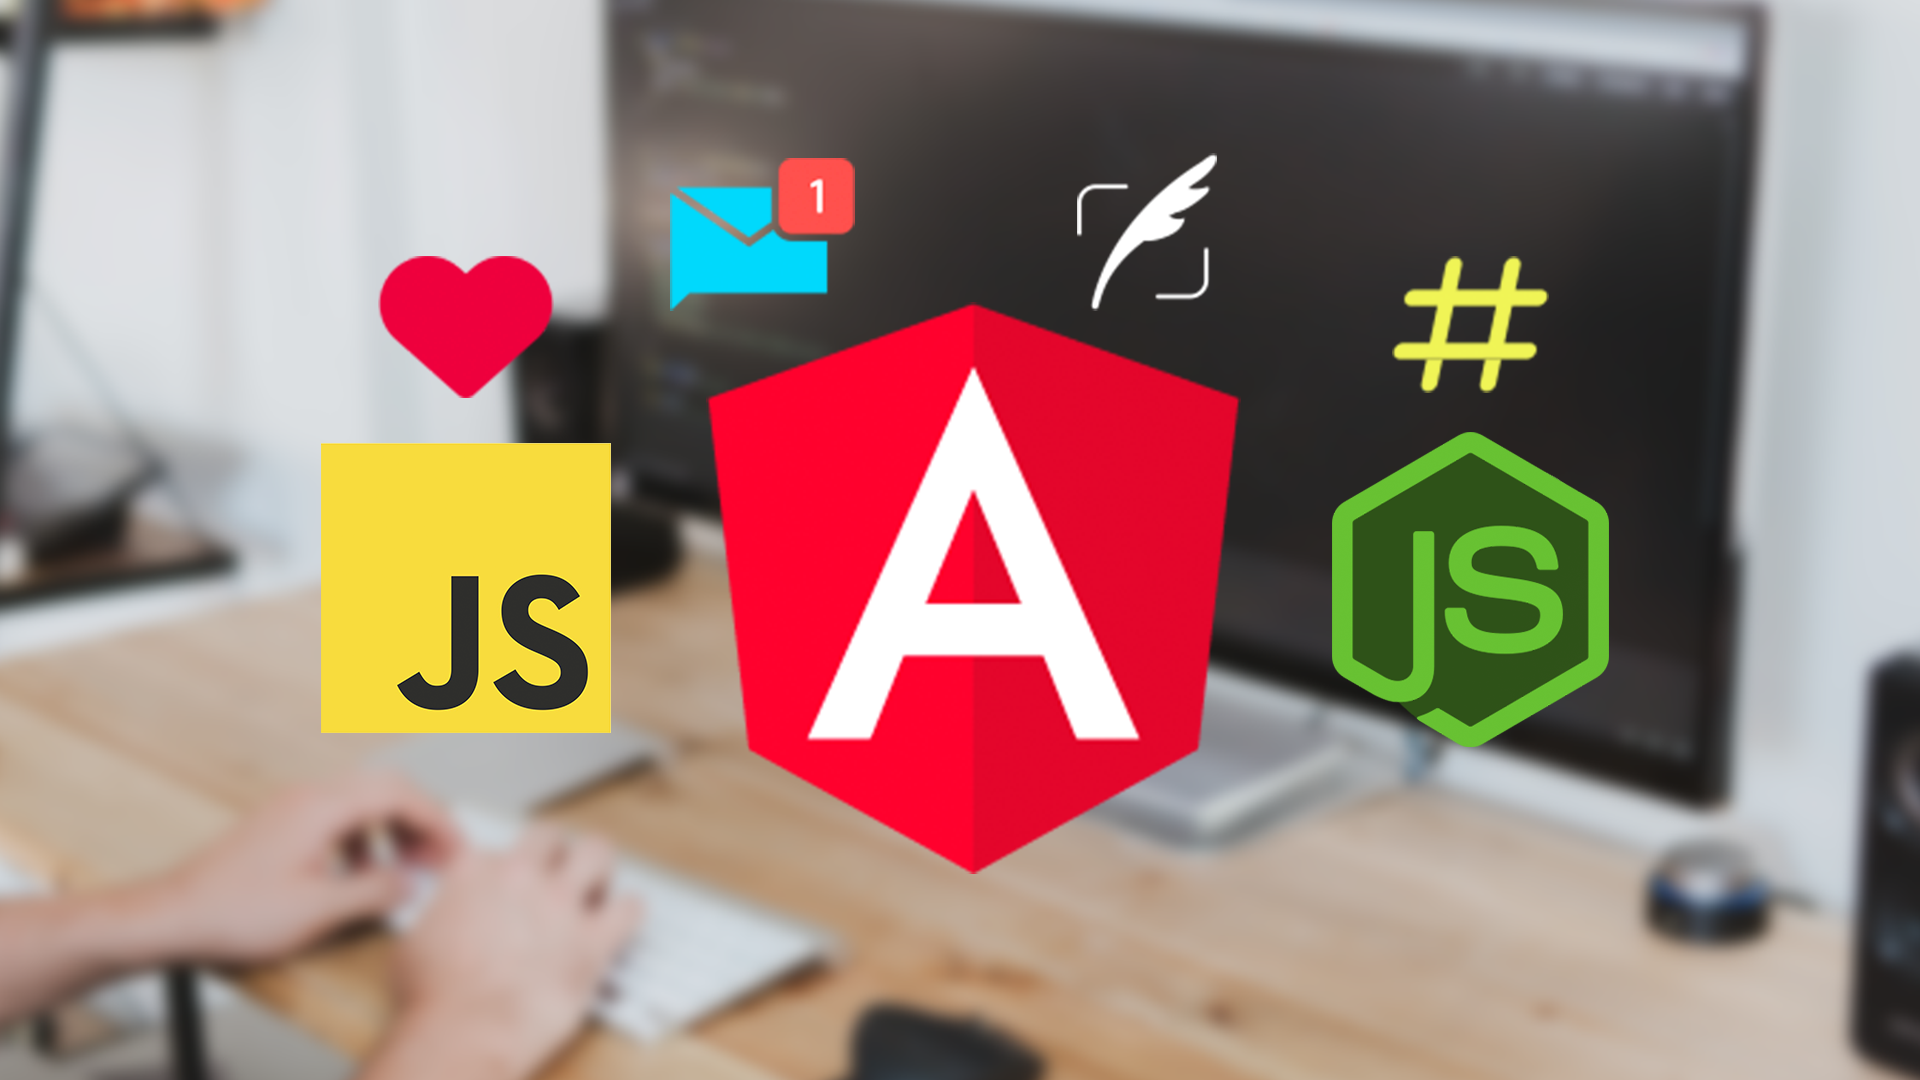 Desarrollar una red social con JavaScript, Angular, NodeJS ...